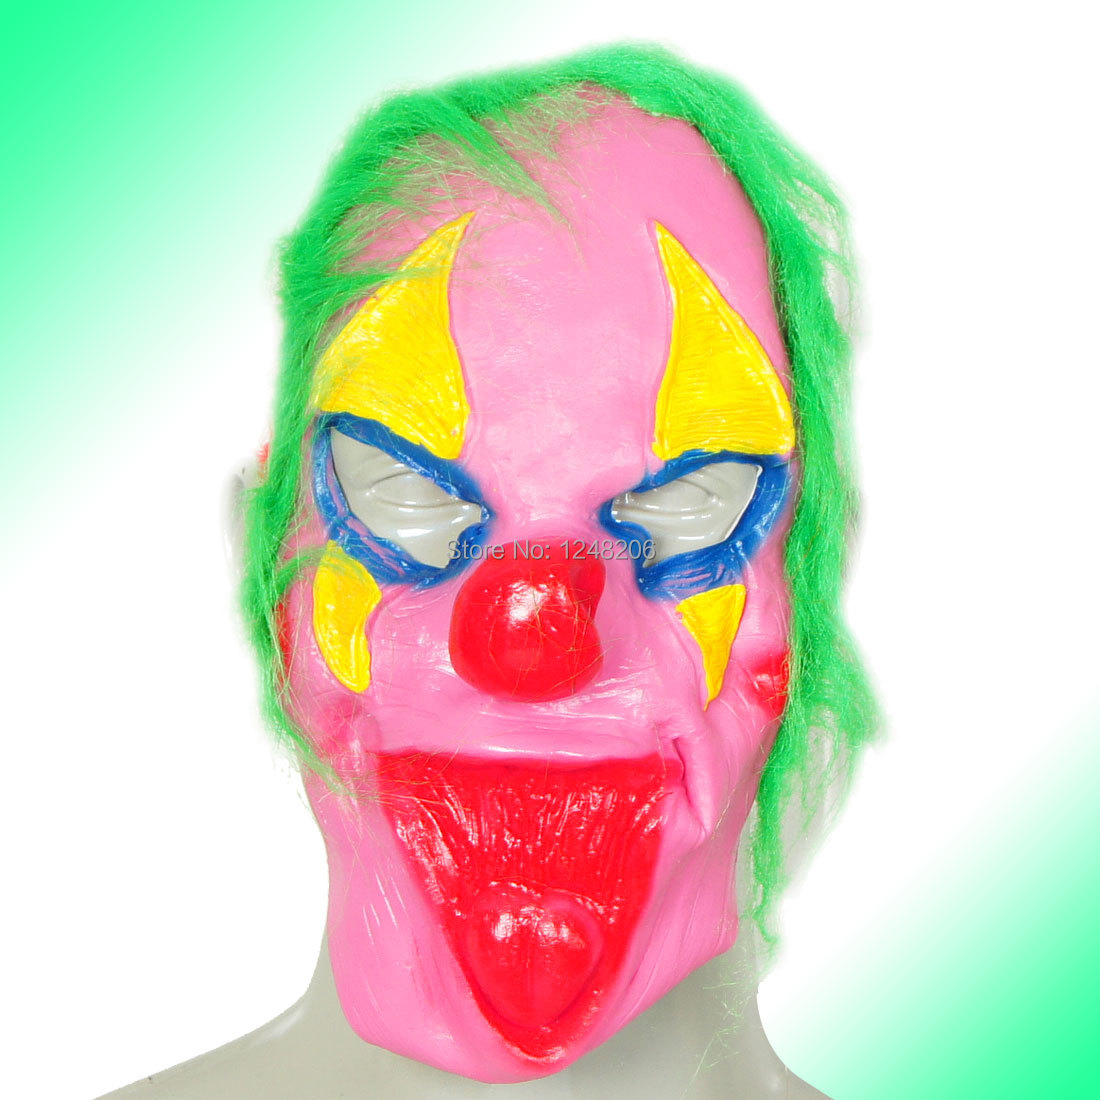 Green Faux Fur Decor Fuchsia Red Yellow Blue Masquerade Costume Clown Mask Discount 50 Holidy(China (Mainland))